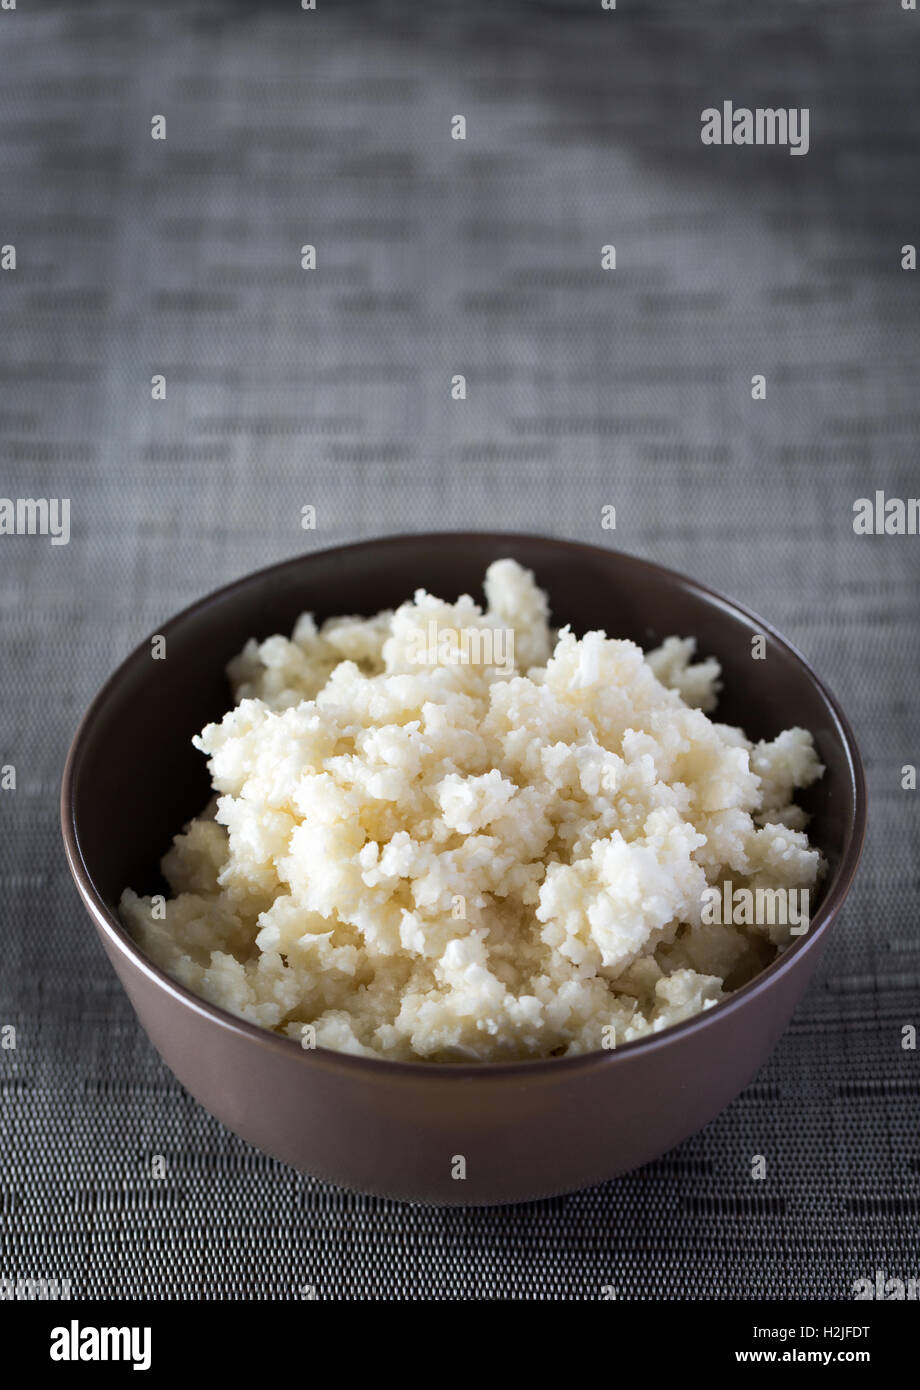 A bowl of cauliflower rice - Stock Image